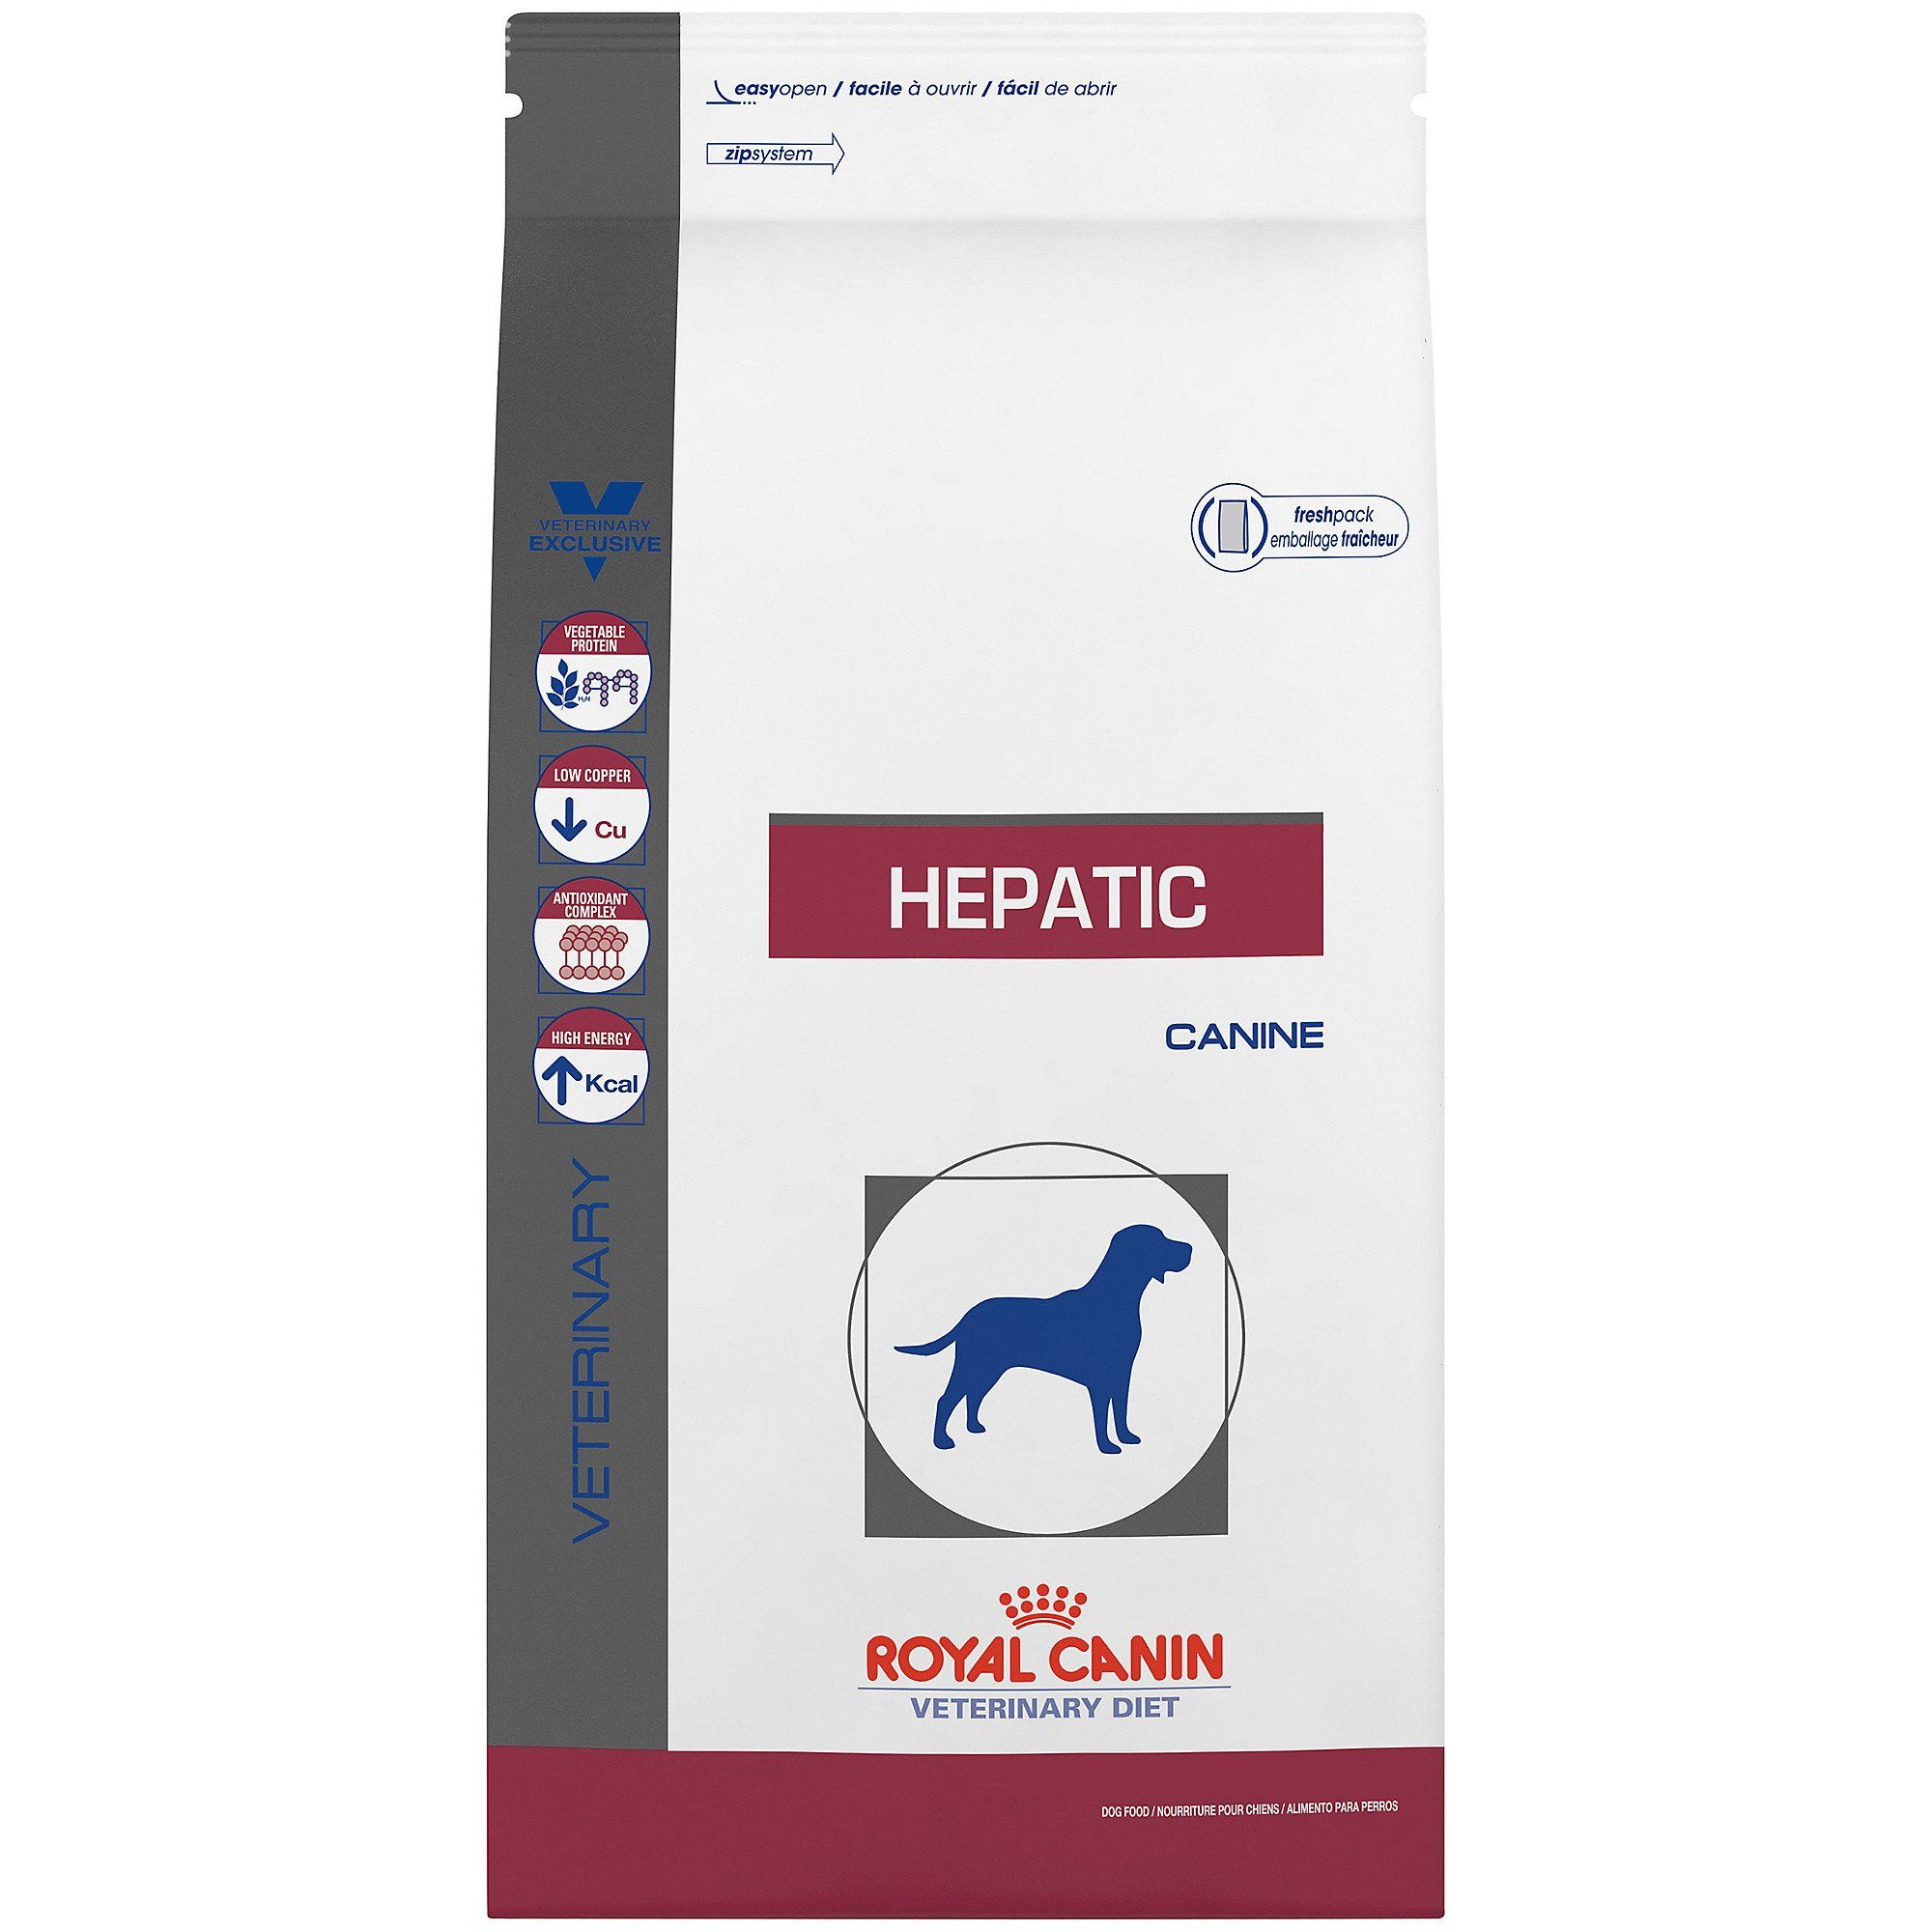 Royal Canin Veterinary Diet Canine Hepatic Dry Dog Food 7 7 Lbs